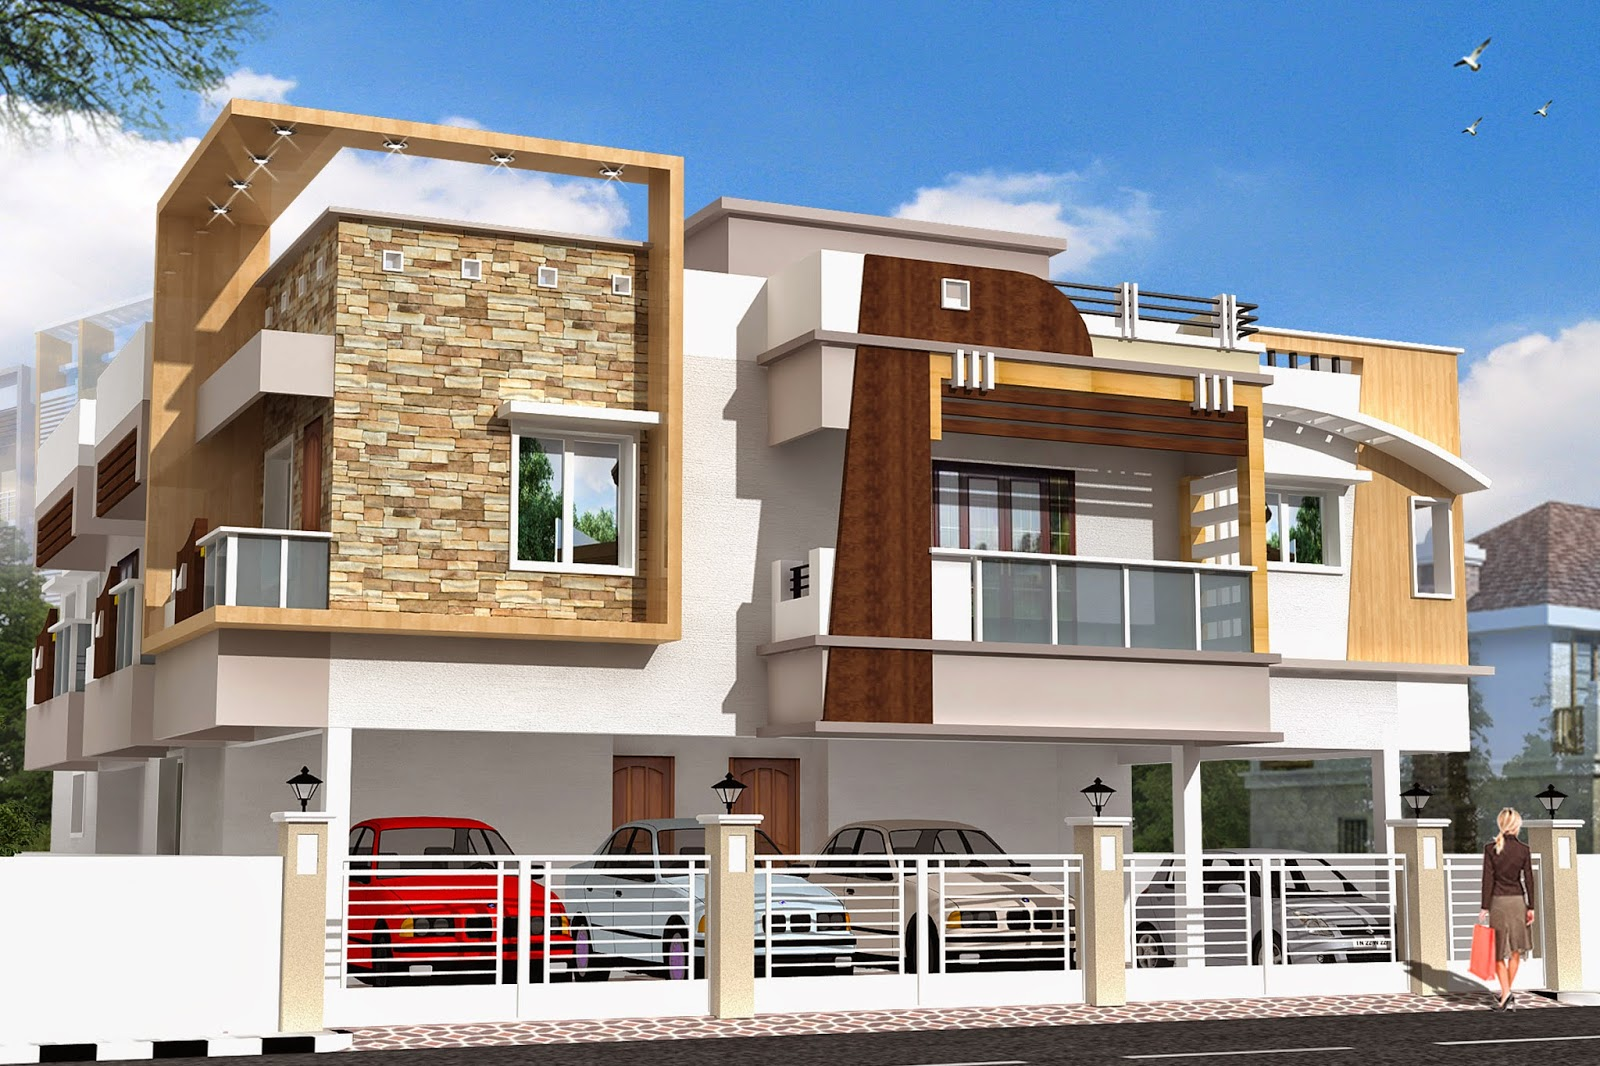 Luckydesigners 3d elevation residential building 3d house building